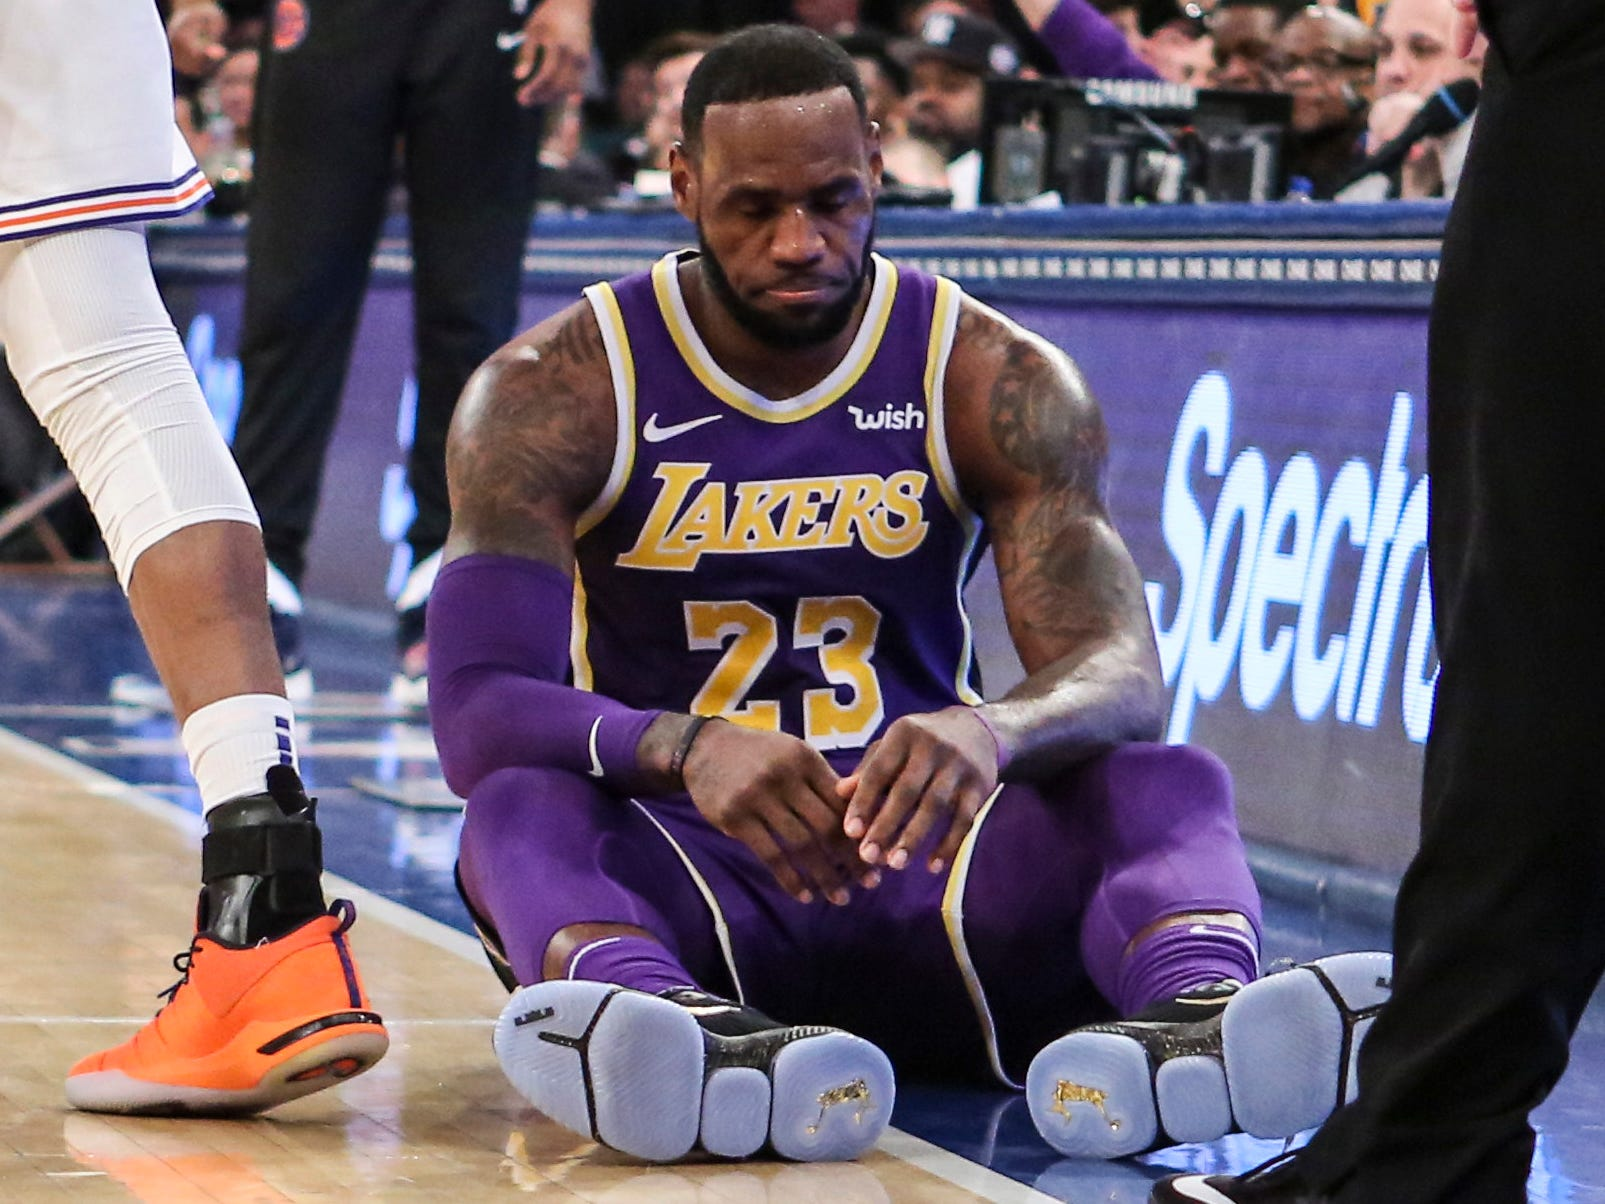 March 17, 2019: LeBron James takes his time getting up off the floor after a being fouled against the Knicks at Madison Square Garden.